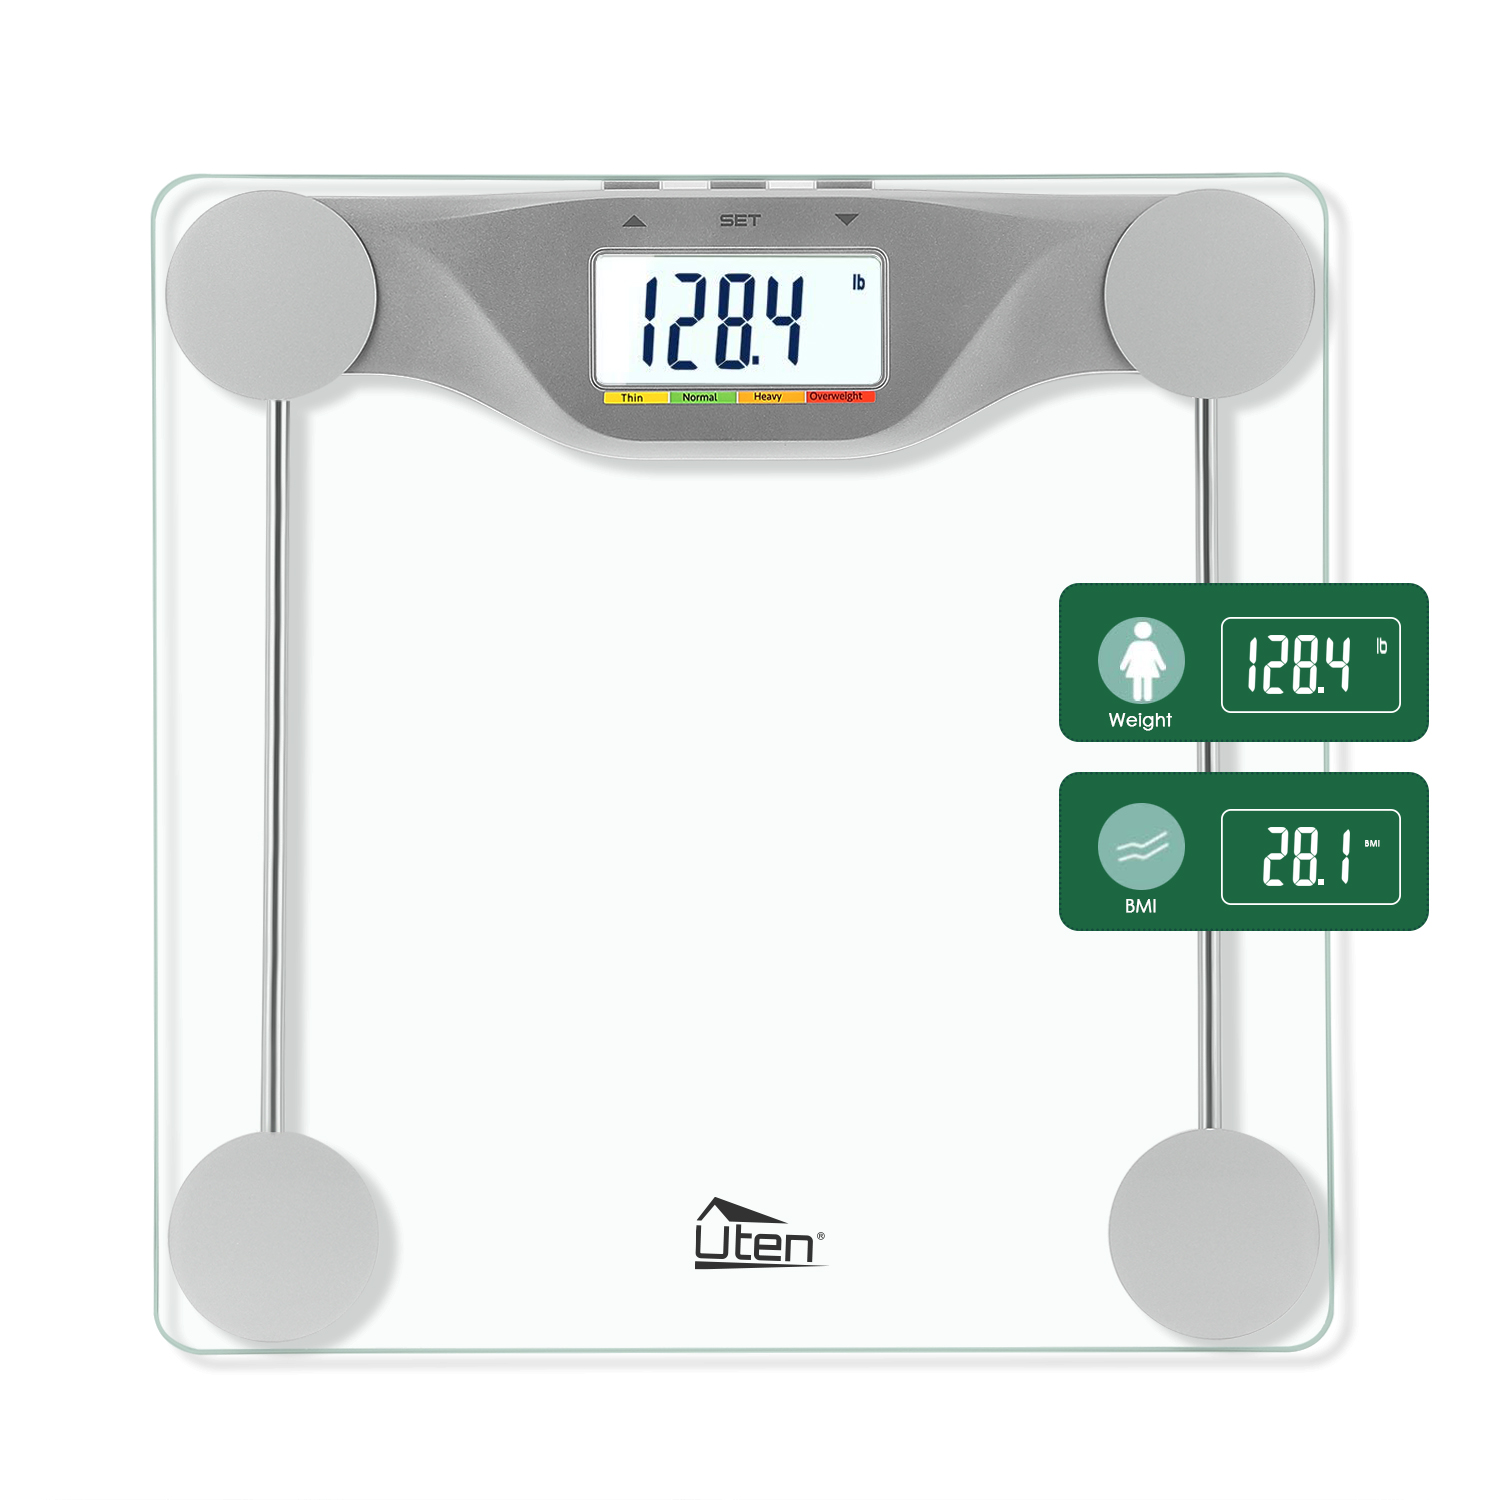 Details About Bathroom Scales Weight Scale Smart Body Fat Bones BMI Digital  Electronic Fitness